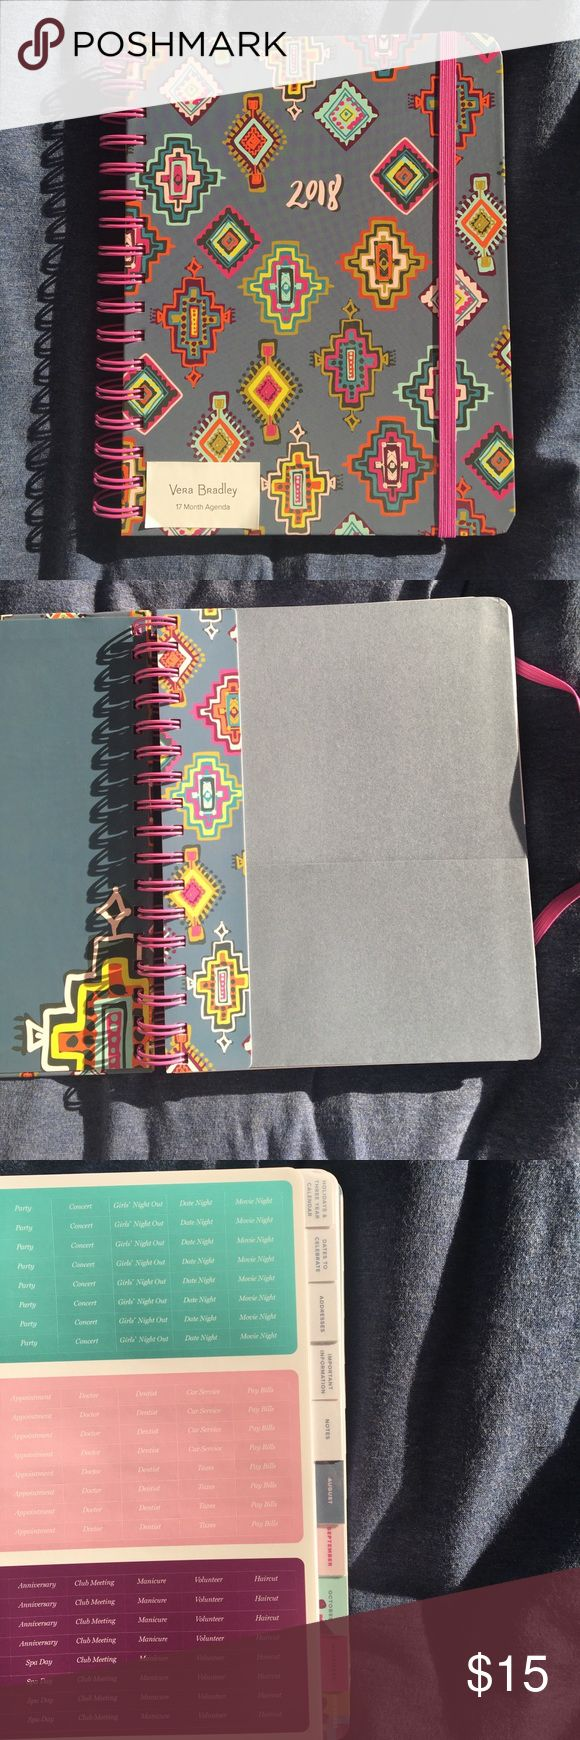 Vera Bradley 17 month planner Vera Bradley 17 month planner August 2017 - December 2018 Monthly calendar overview with weekly planning pages Includes front pocket and moveable ruler Has tabs in front with stickers, holidays & 3 year calendar, dates to celebrate, addresses, important info, and notes Vera Bradley Other